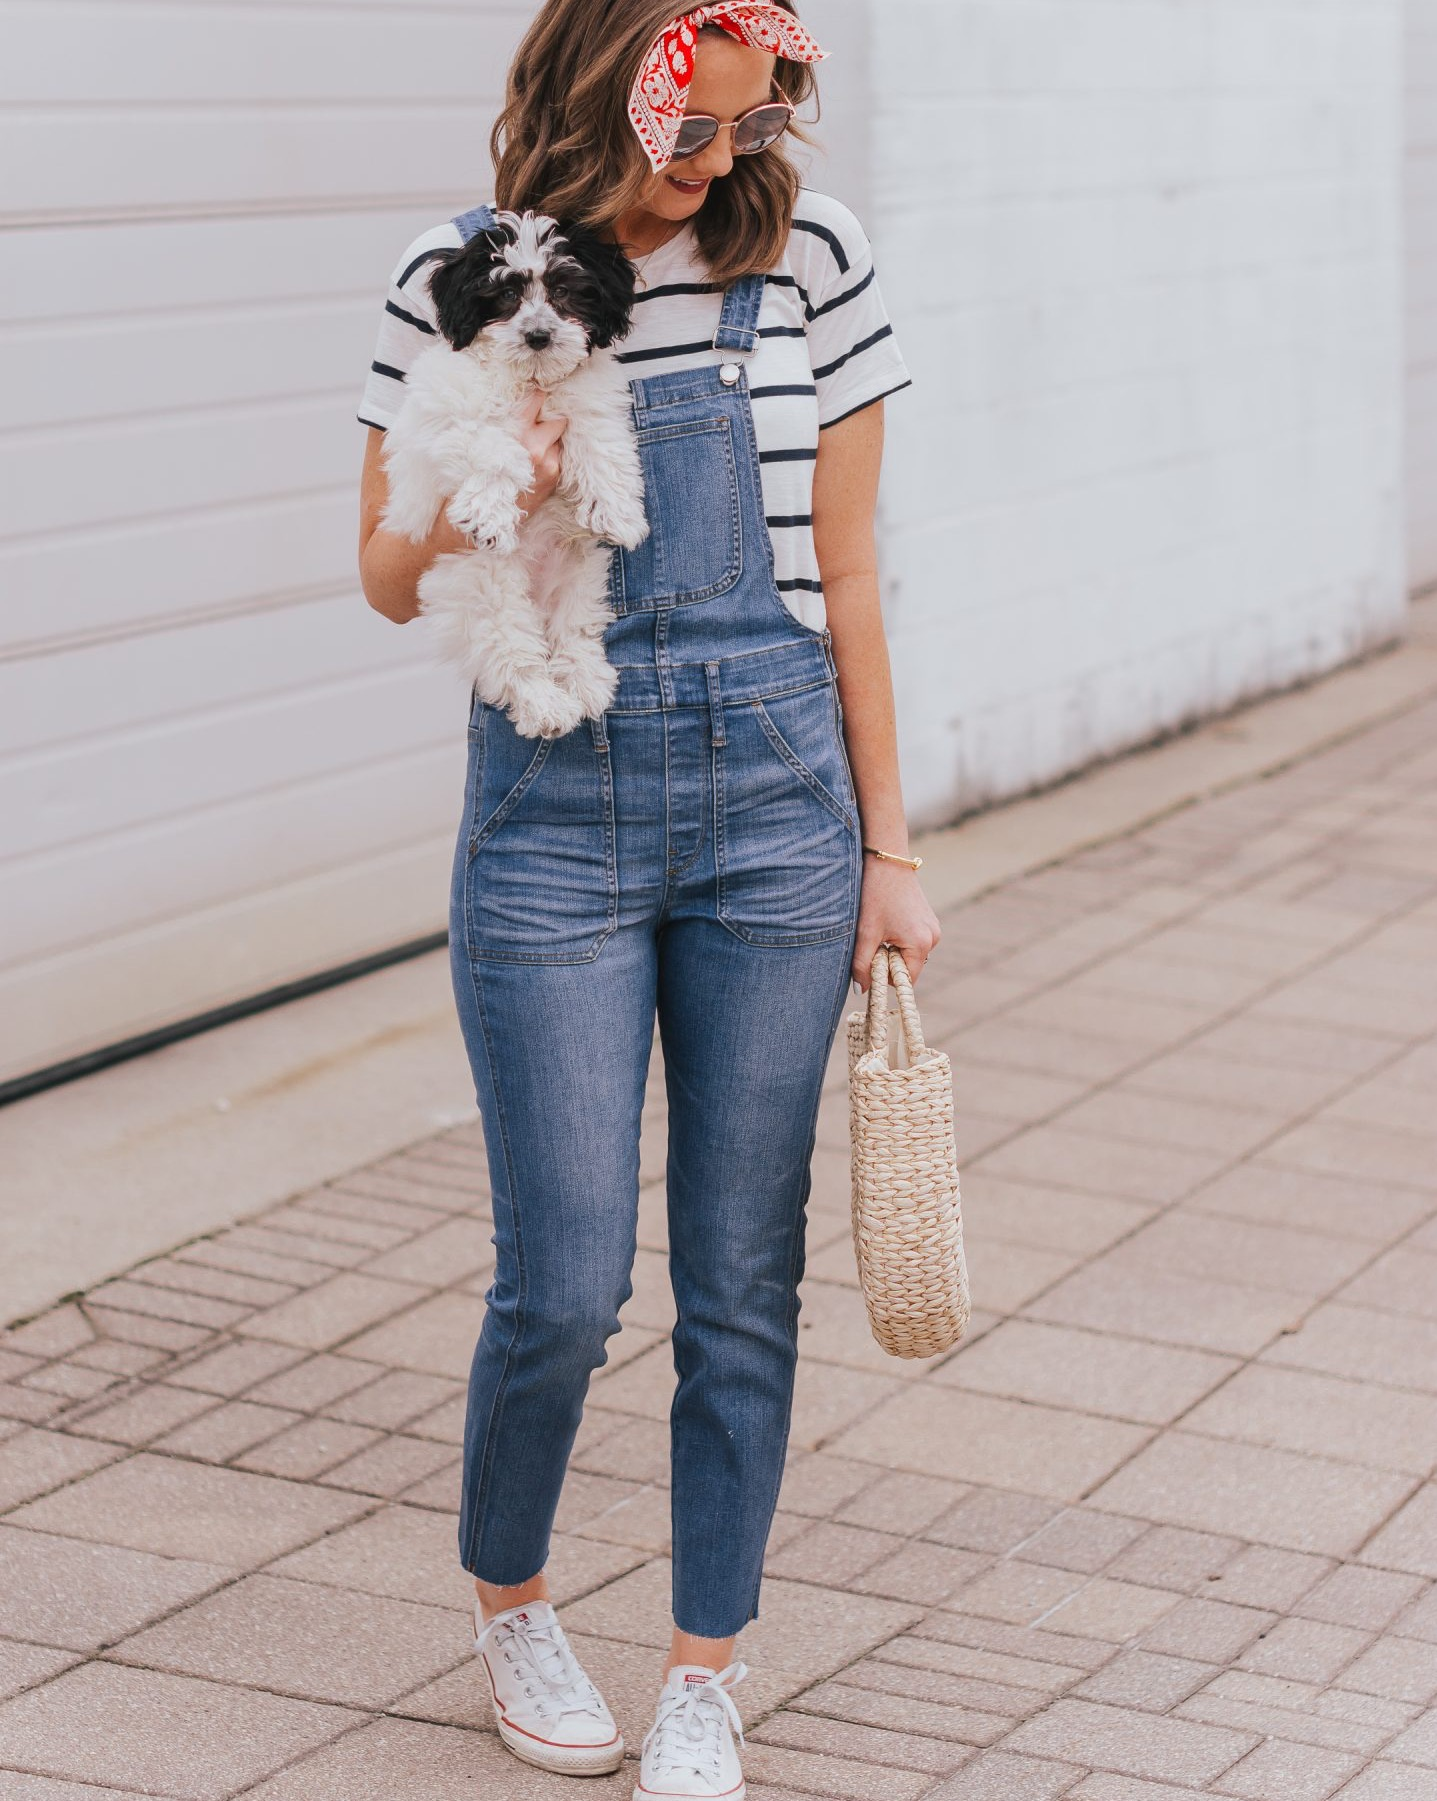 what to wear for the 4th of july, 4th of july outfit inspiration,, overalls and stripes, subtle red white and blue outfit